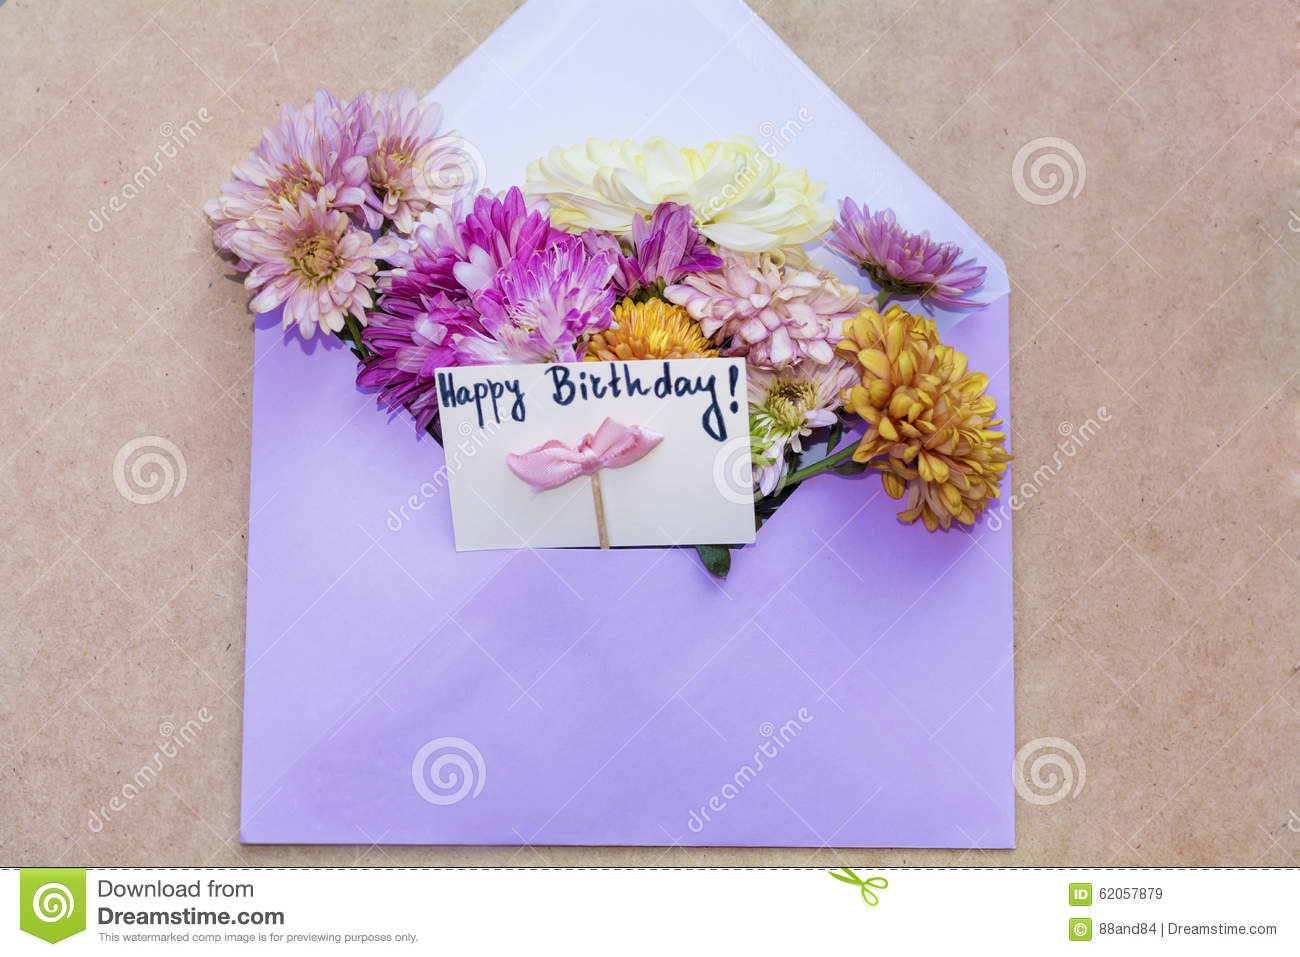 Chrysanthemums Flowers In Violet Envelope With I Happy Birthday Card